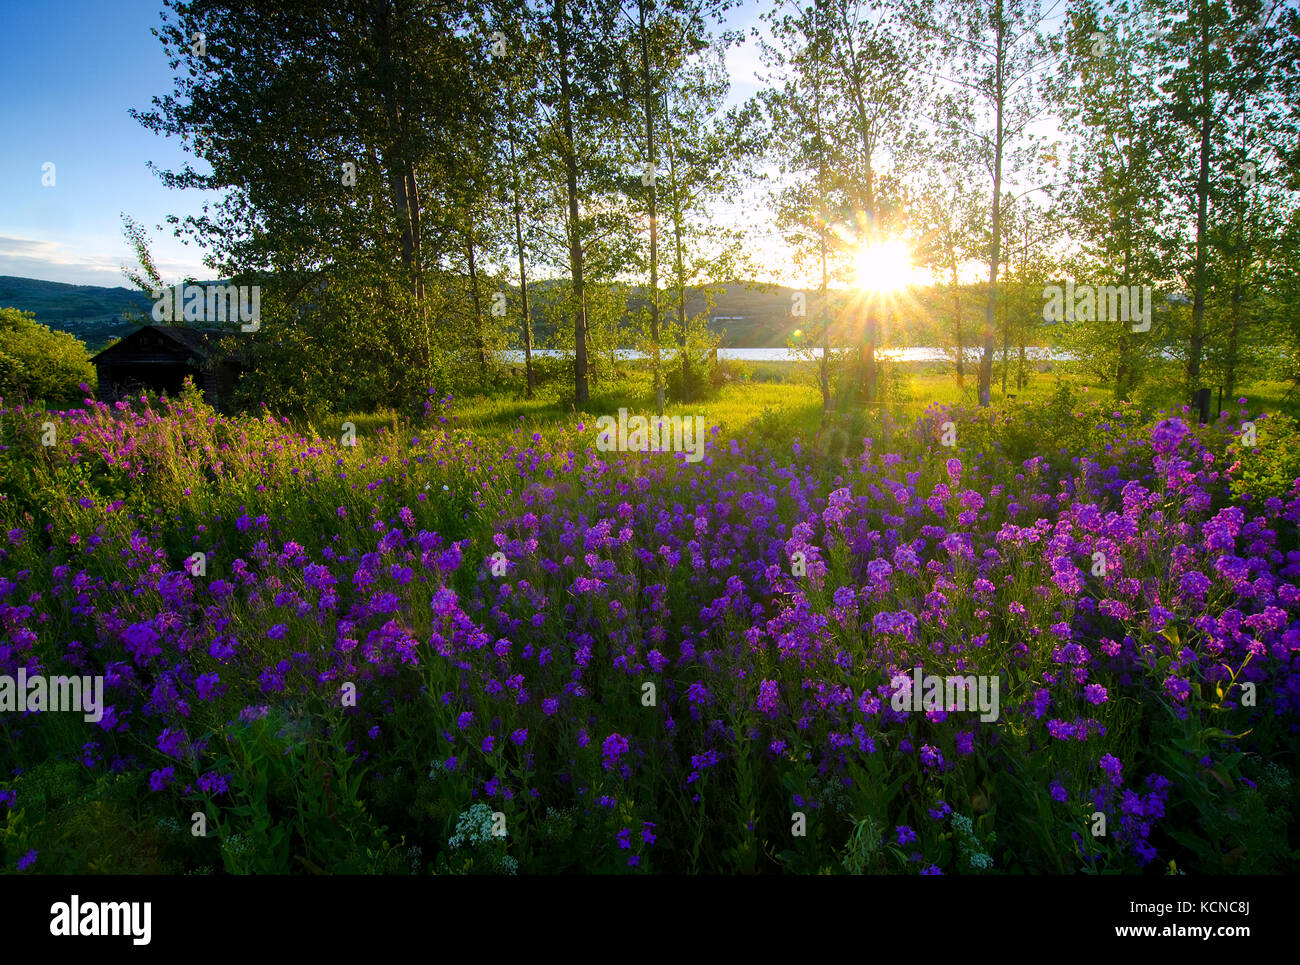 Hesperis matronalis (Dames Rocket) in full bloom as they soak in the late spring sun alongside Swan Lake in Vernon - Stock Image